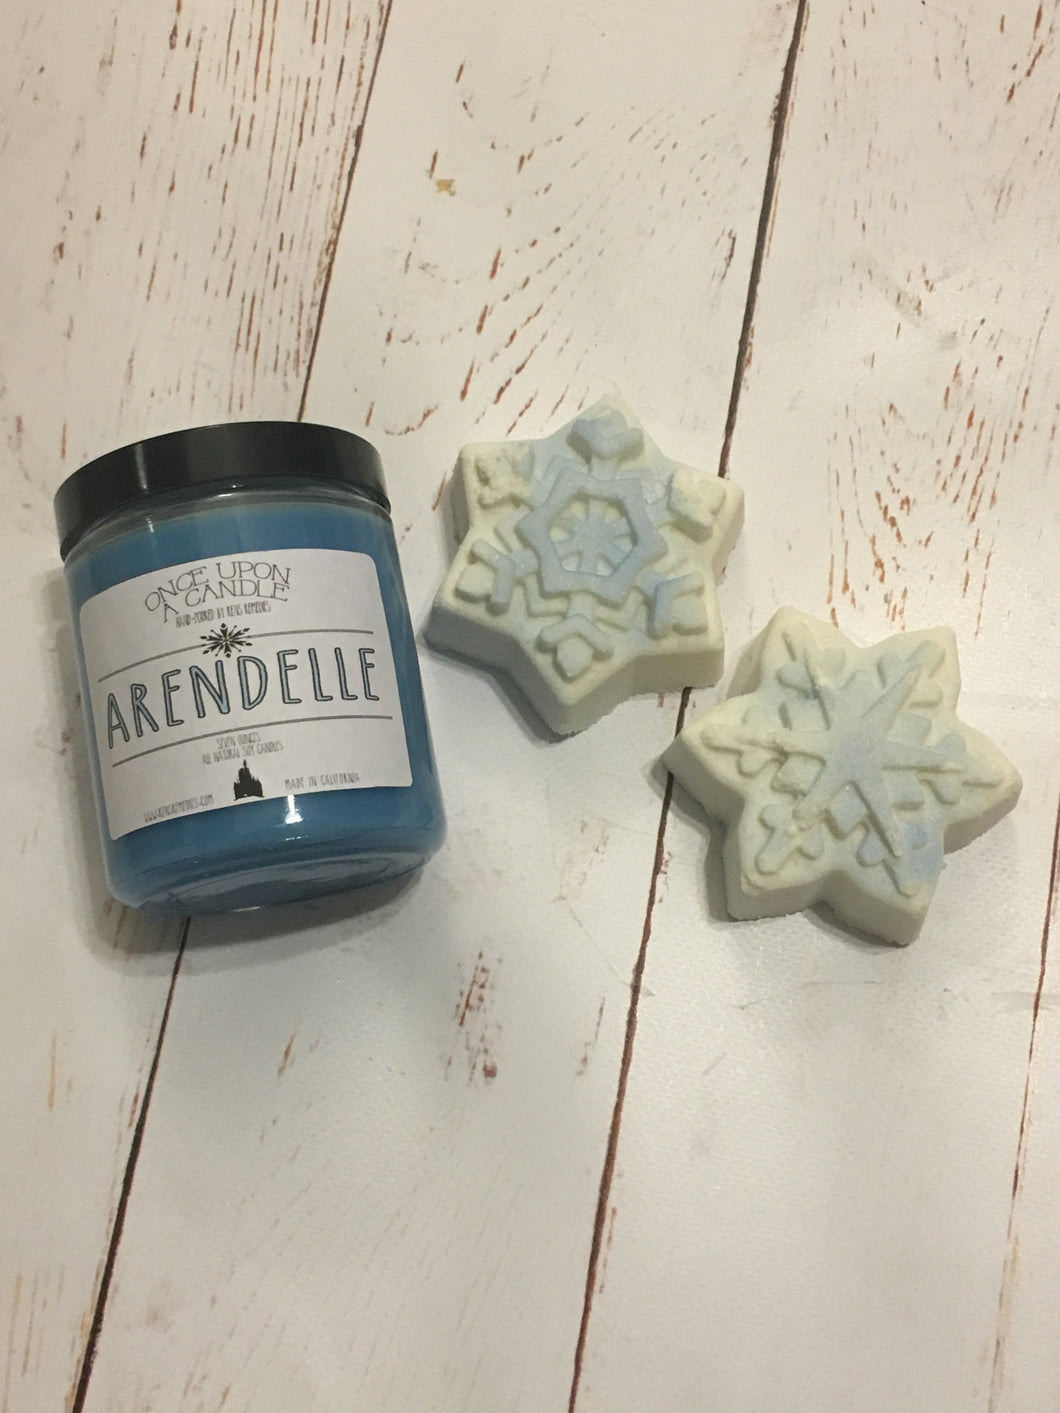 Frozen Inspired Candle & Bath Bomb Set - Arendelle Candle - Anna & Elsa Gift